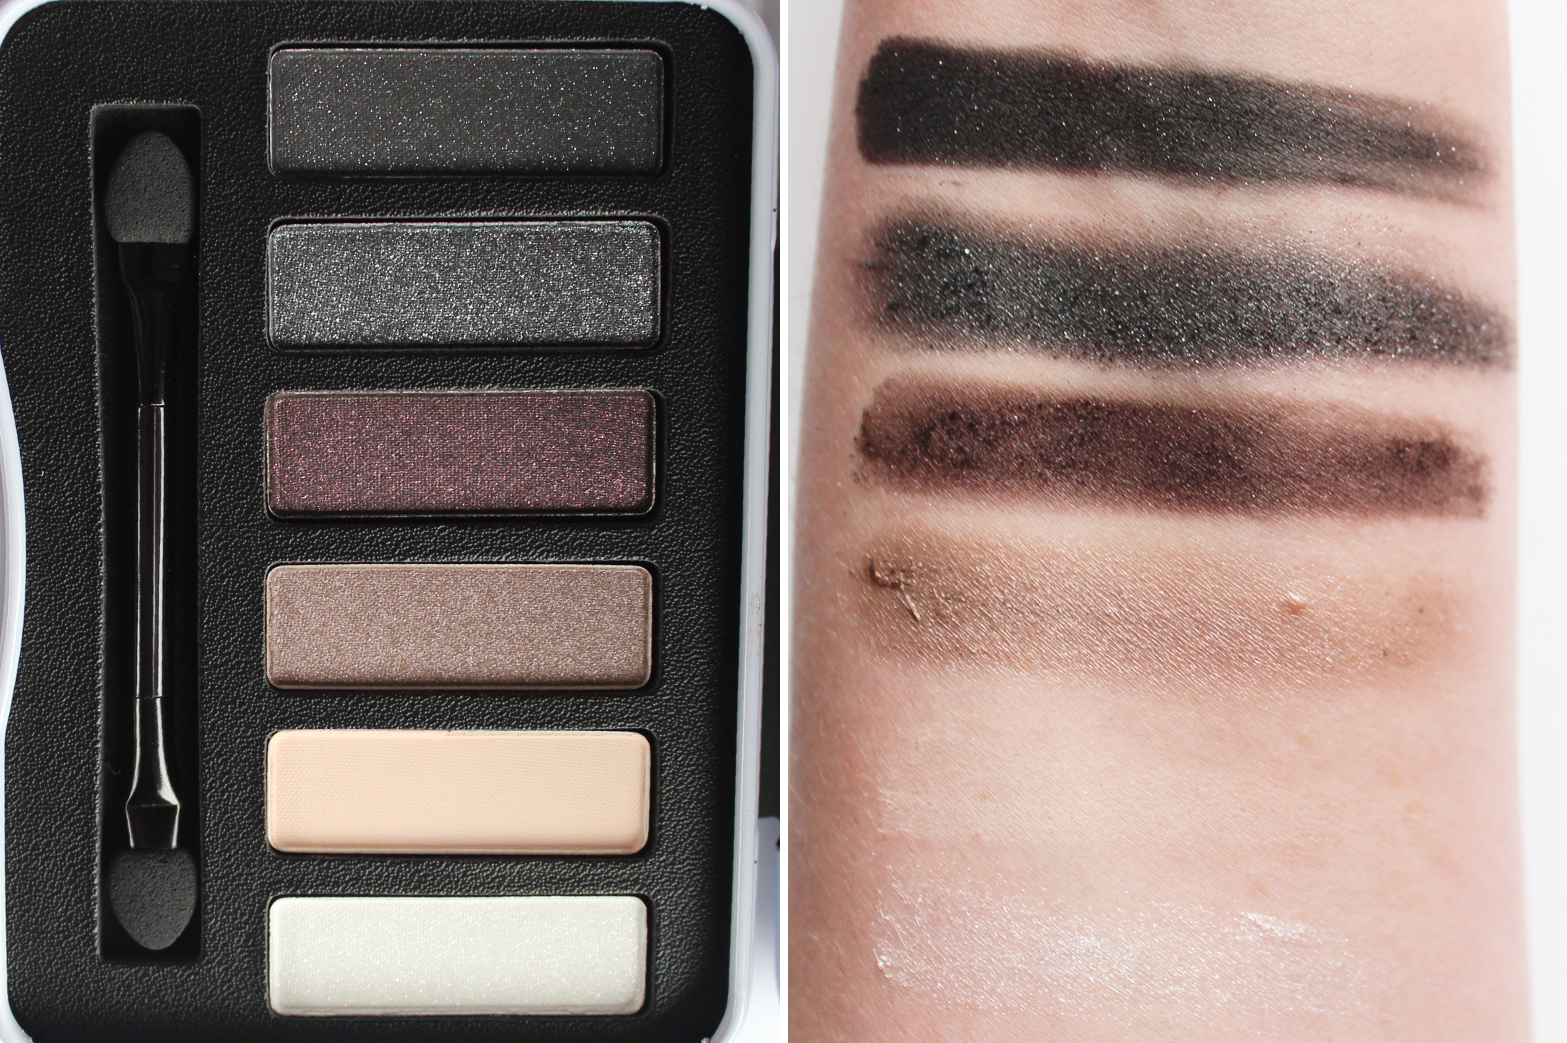 BRONX COLORS | Burlesque + Angel Dust Eyeshadow Palettes - Review + Swatches - CassandraMyee